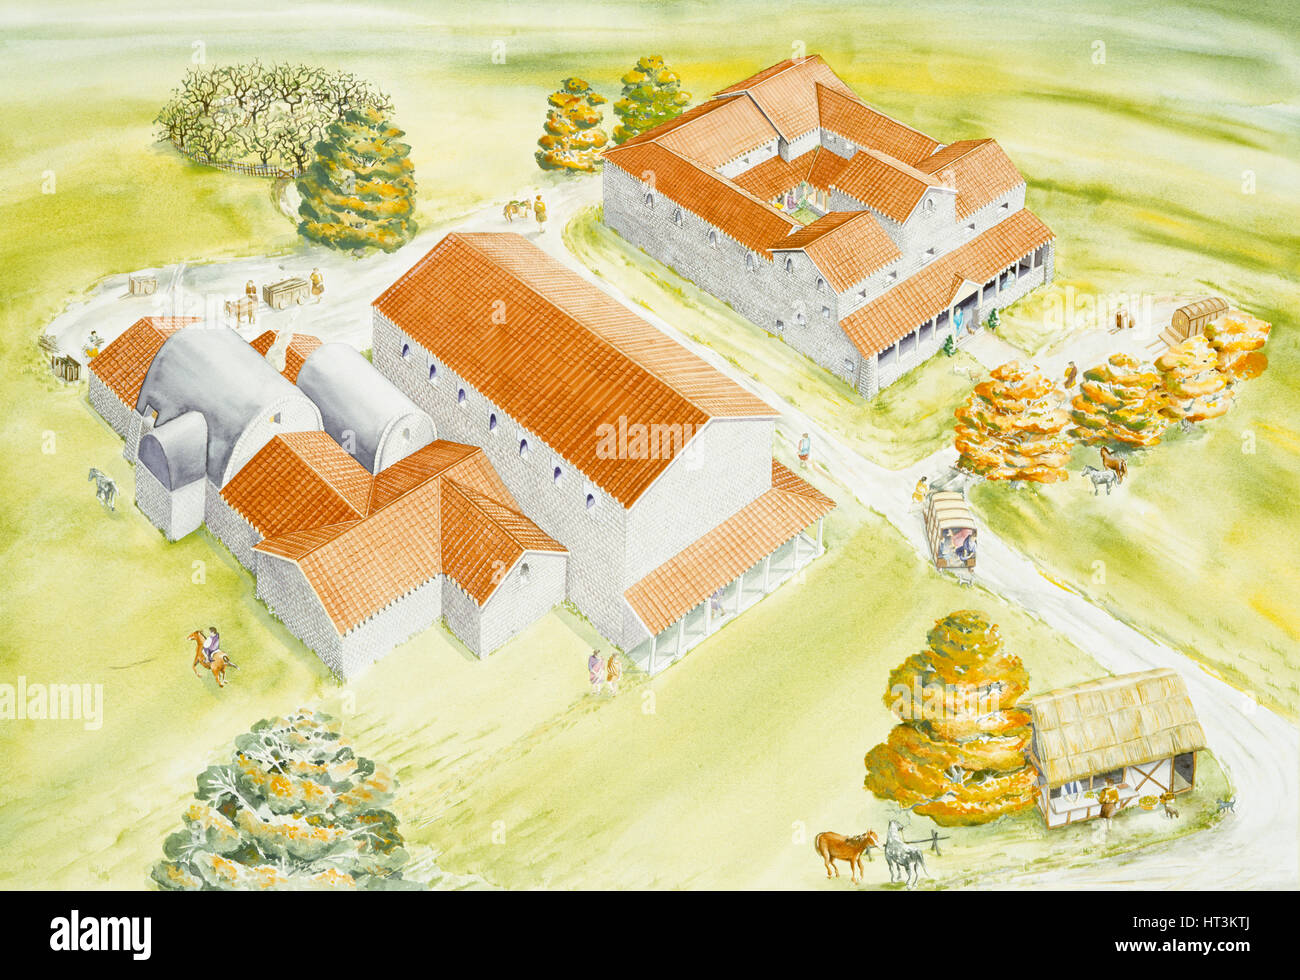 Wall Roman Site, c2nd century, (c1990-2010). Artist: Claire Thorne. - Stock Image